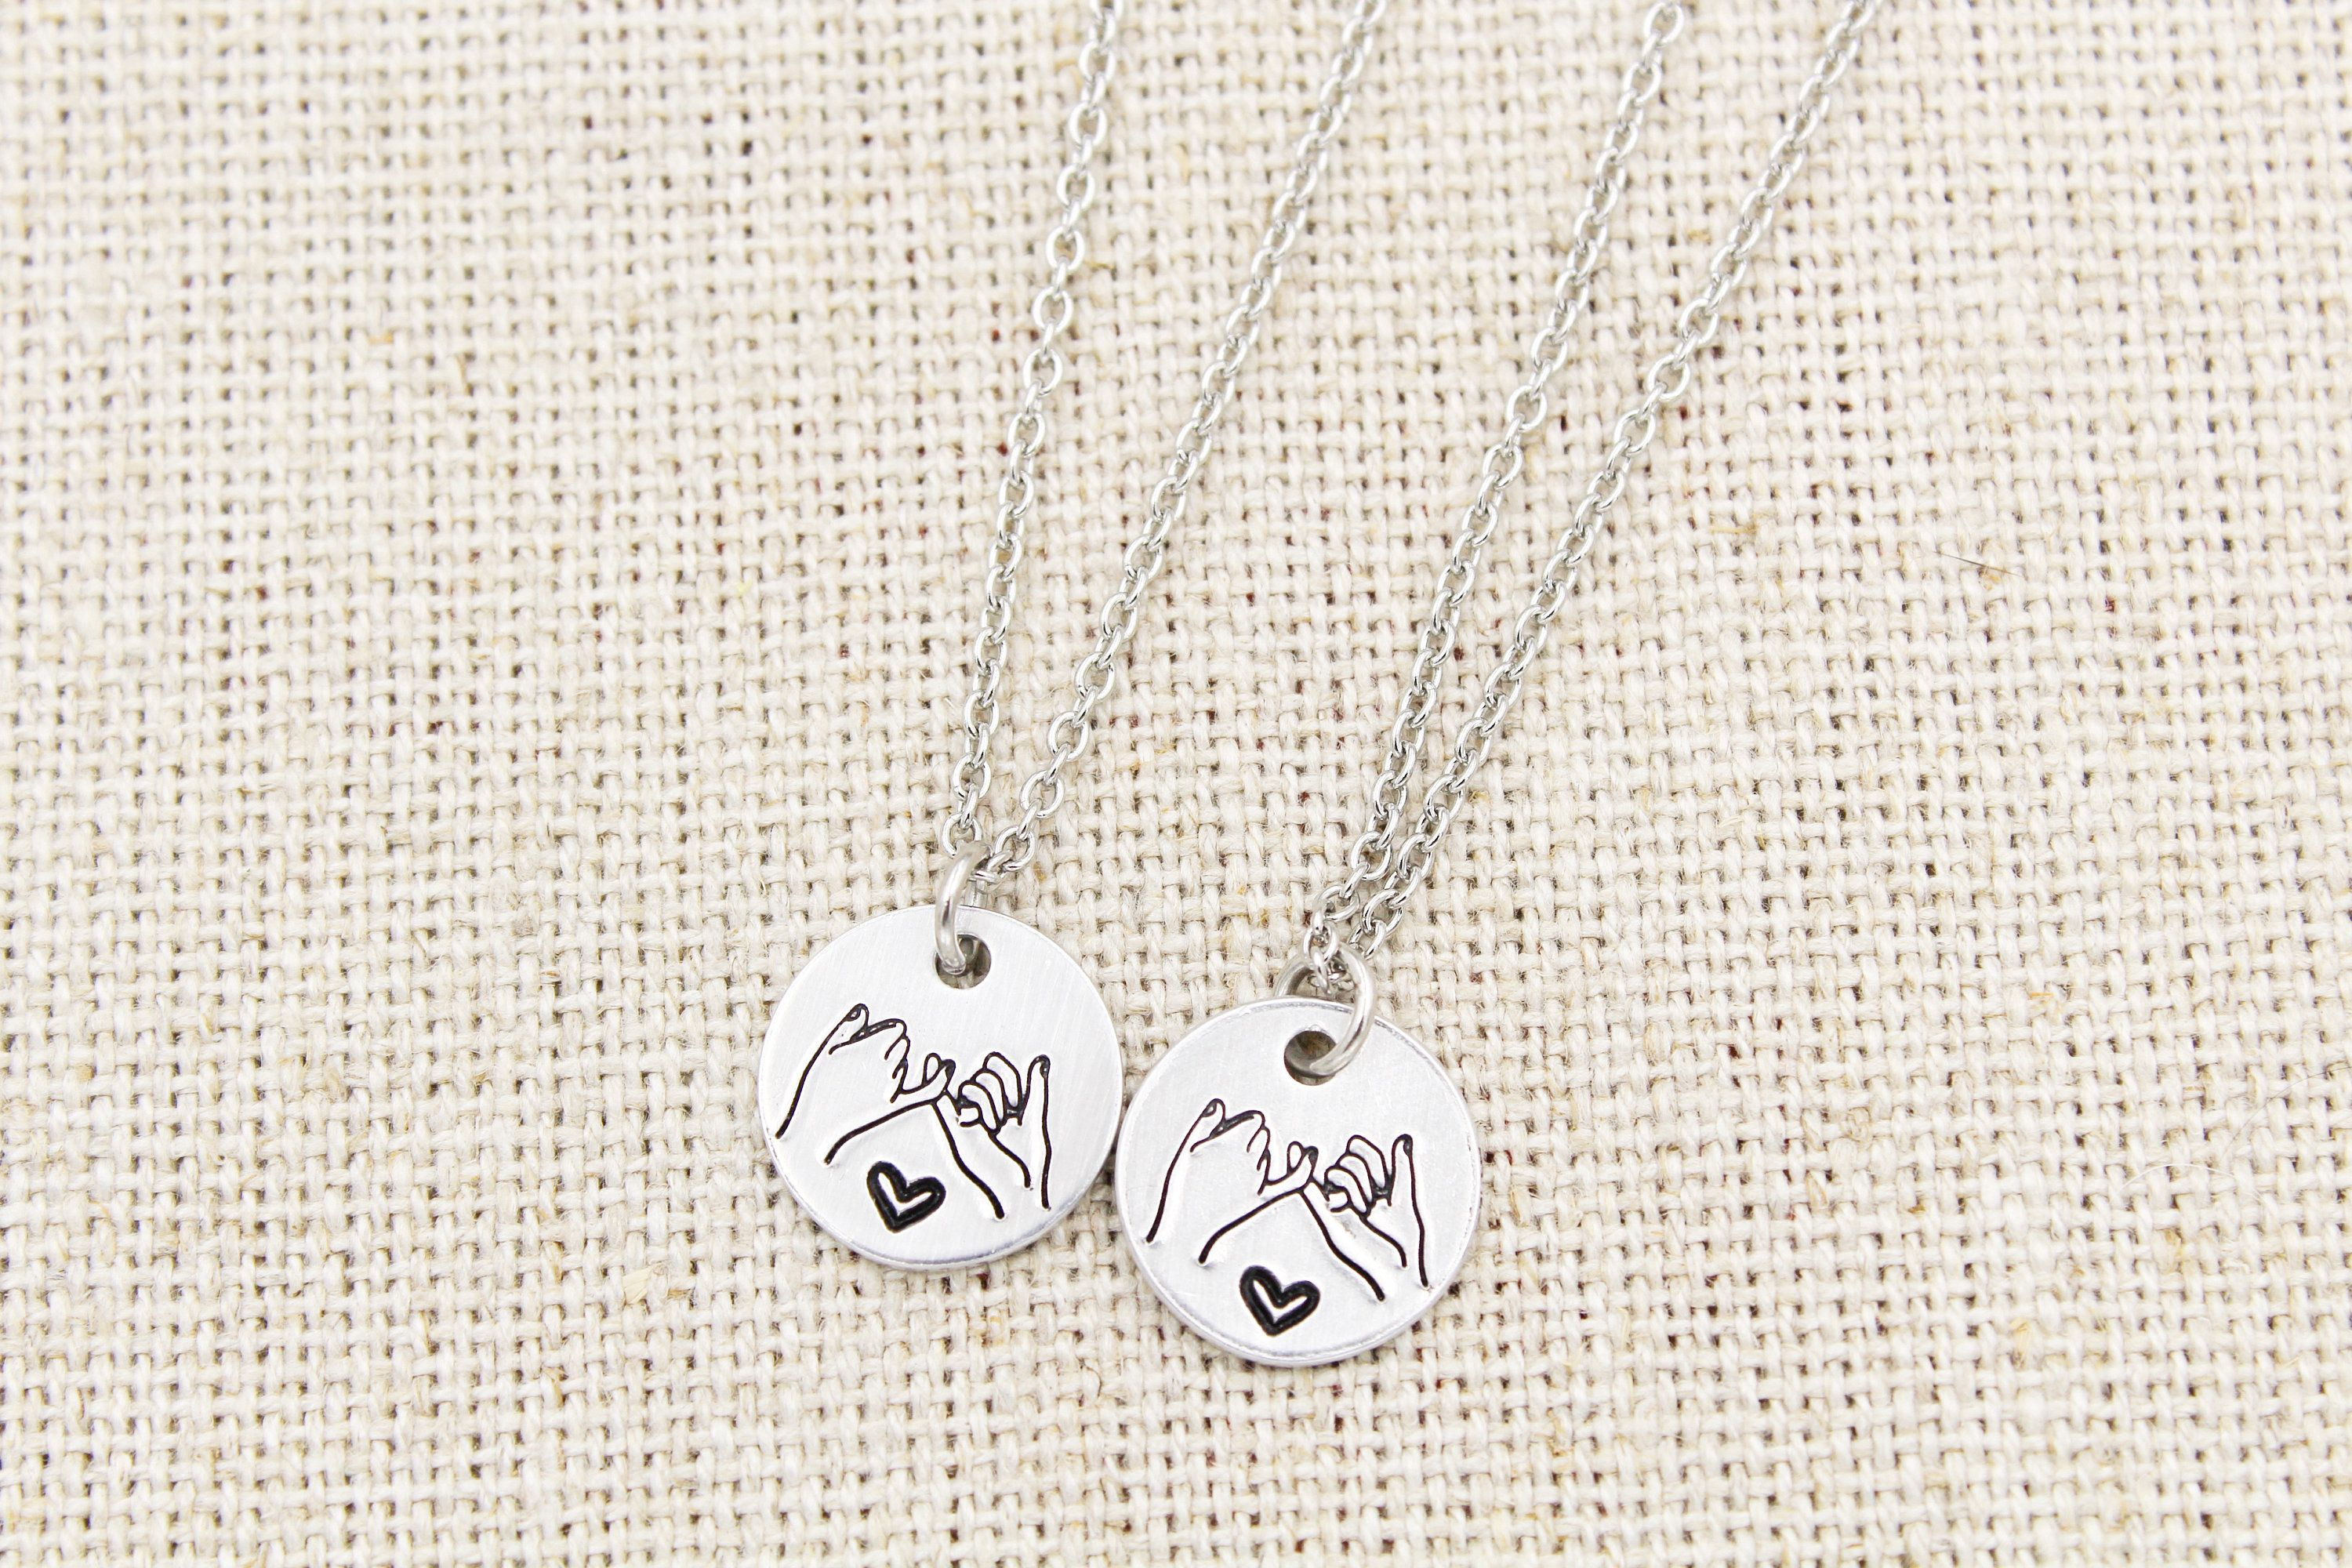 Couple Necklace Personalized Gift BFF necklaces for 2 friendship gifts for 2 Best friend Necklace Set of 2 Pinky promise 2 Friend gifts